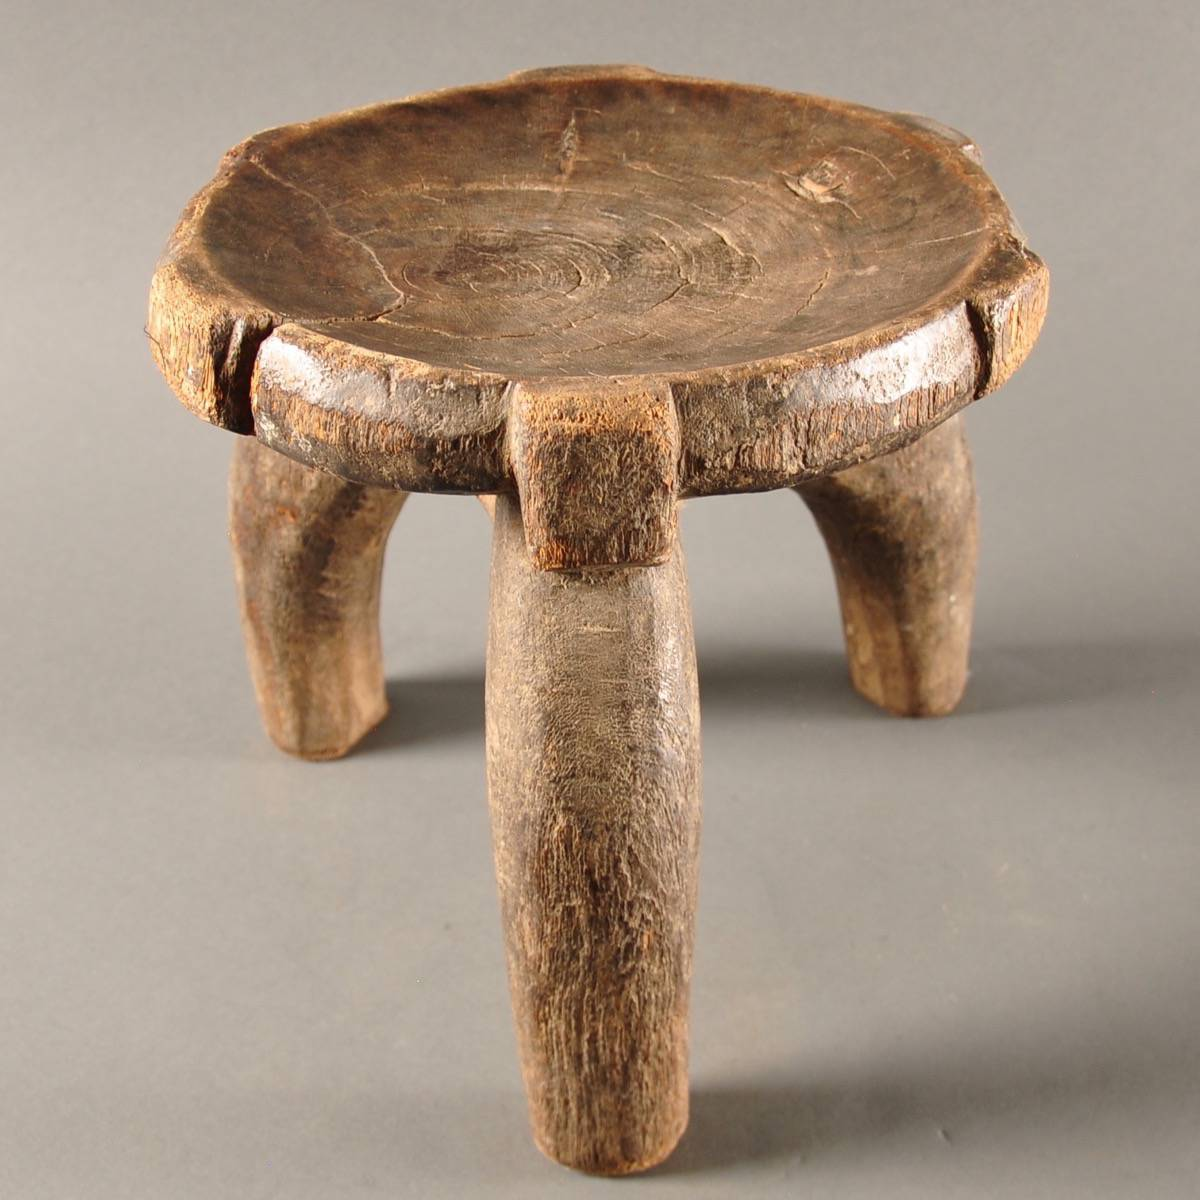 African Tribal Wooden Stool De Grande Antique Furniture